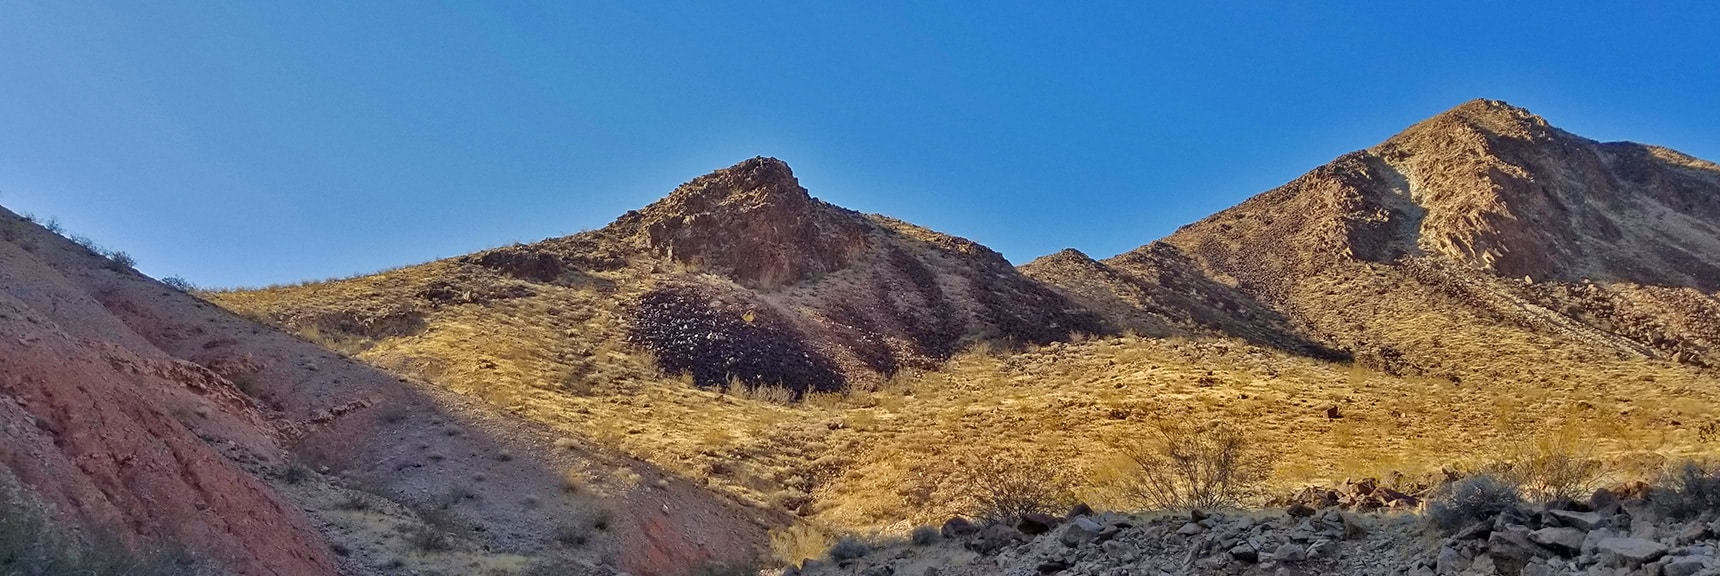 View Back to Lava Butte and the Saddle Pass to the Northern Summit Approach Route. | Lava Butte | Lake Mead National Recreation Area, Nevada